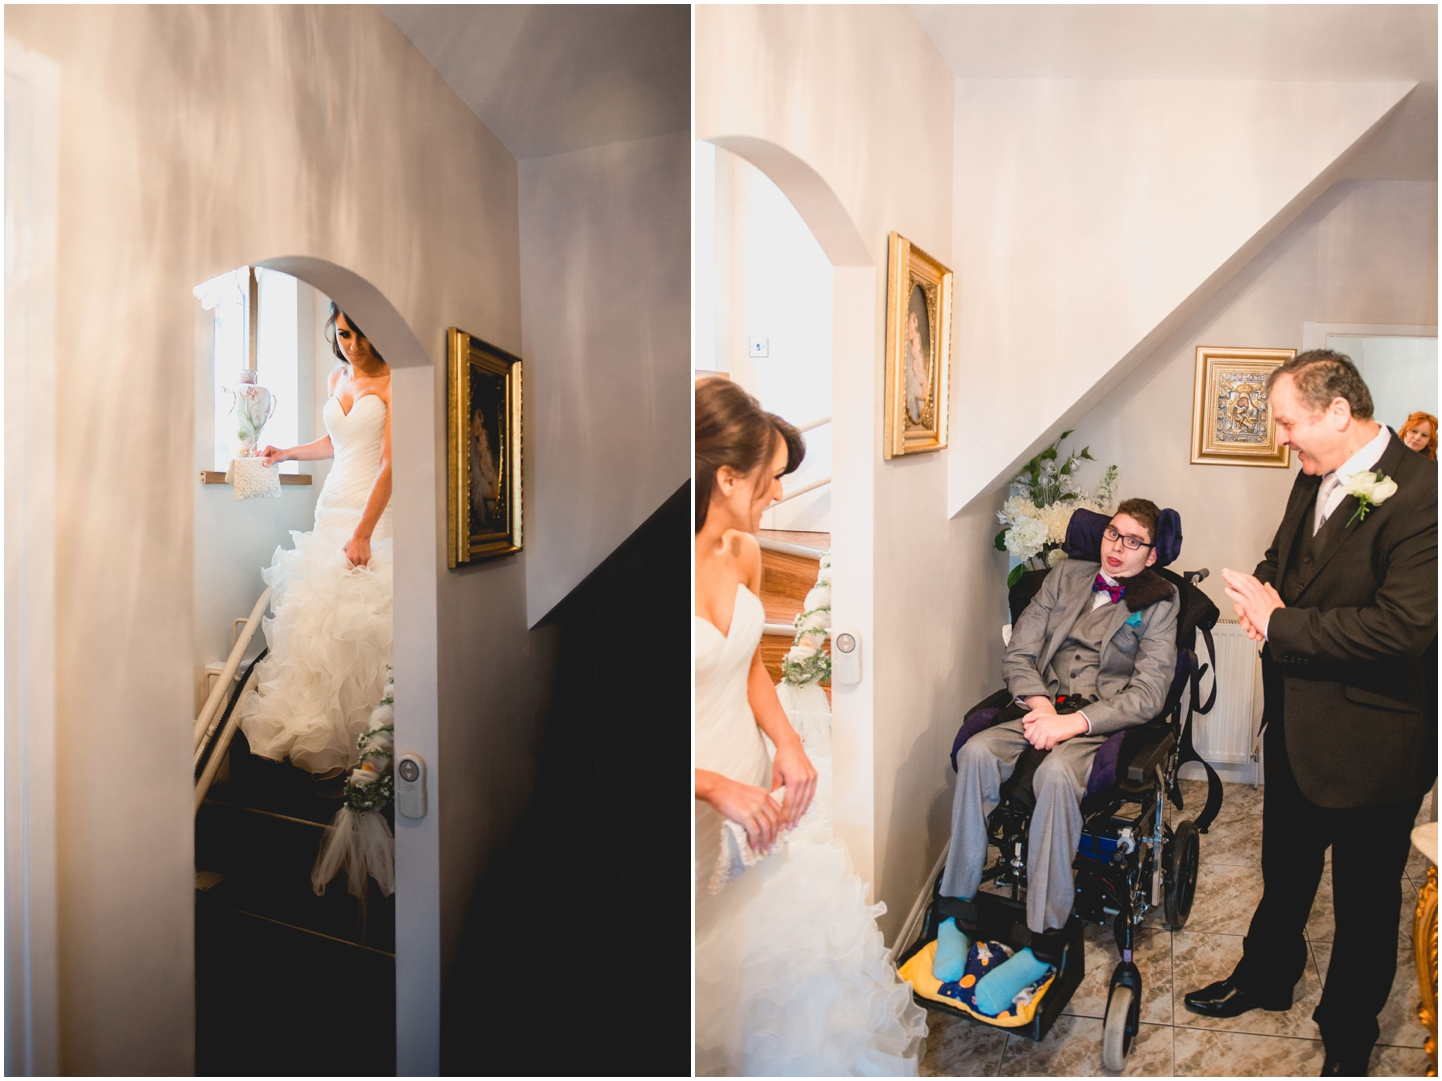 Christina and Jon, Traditional Greek Wedding at Moxhull Hall Hotel, Sutton Coldfield by Lisa Carpenter Photography, Sutton Coldfield, Birmingham Photographer